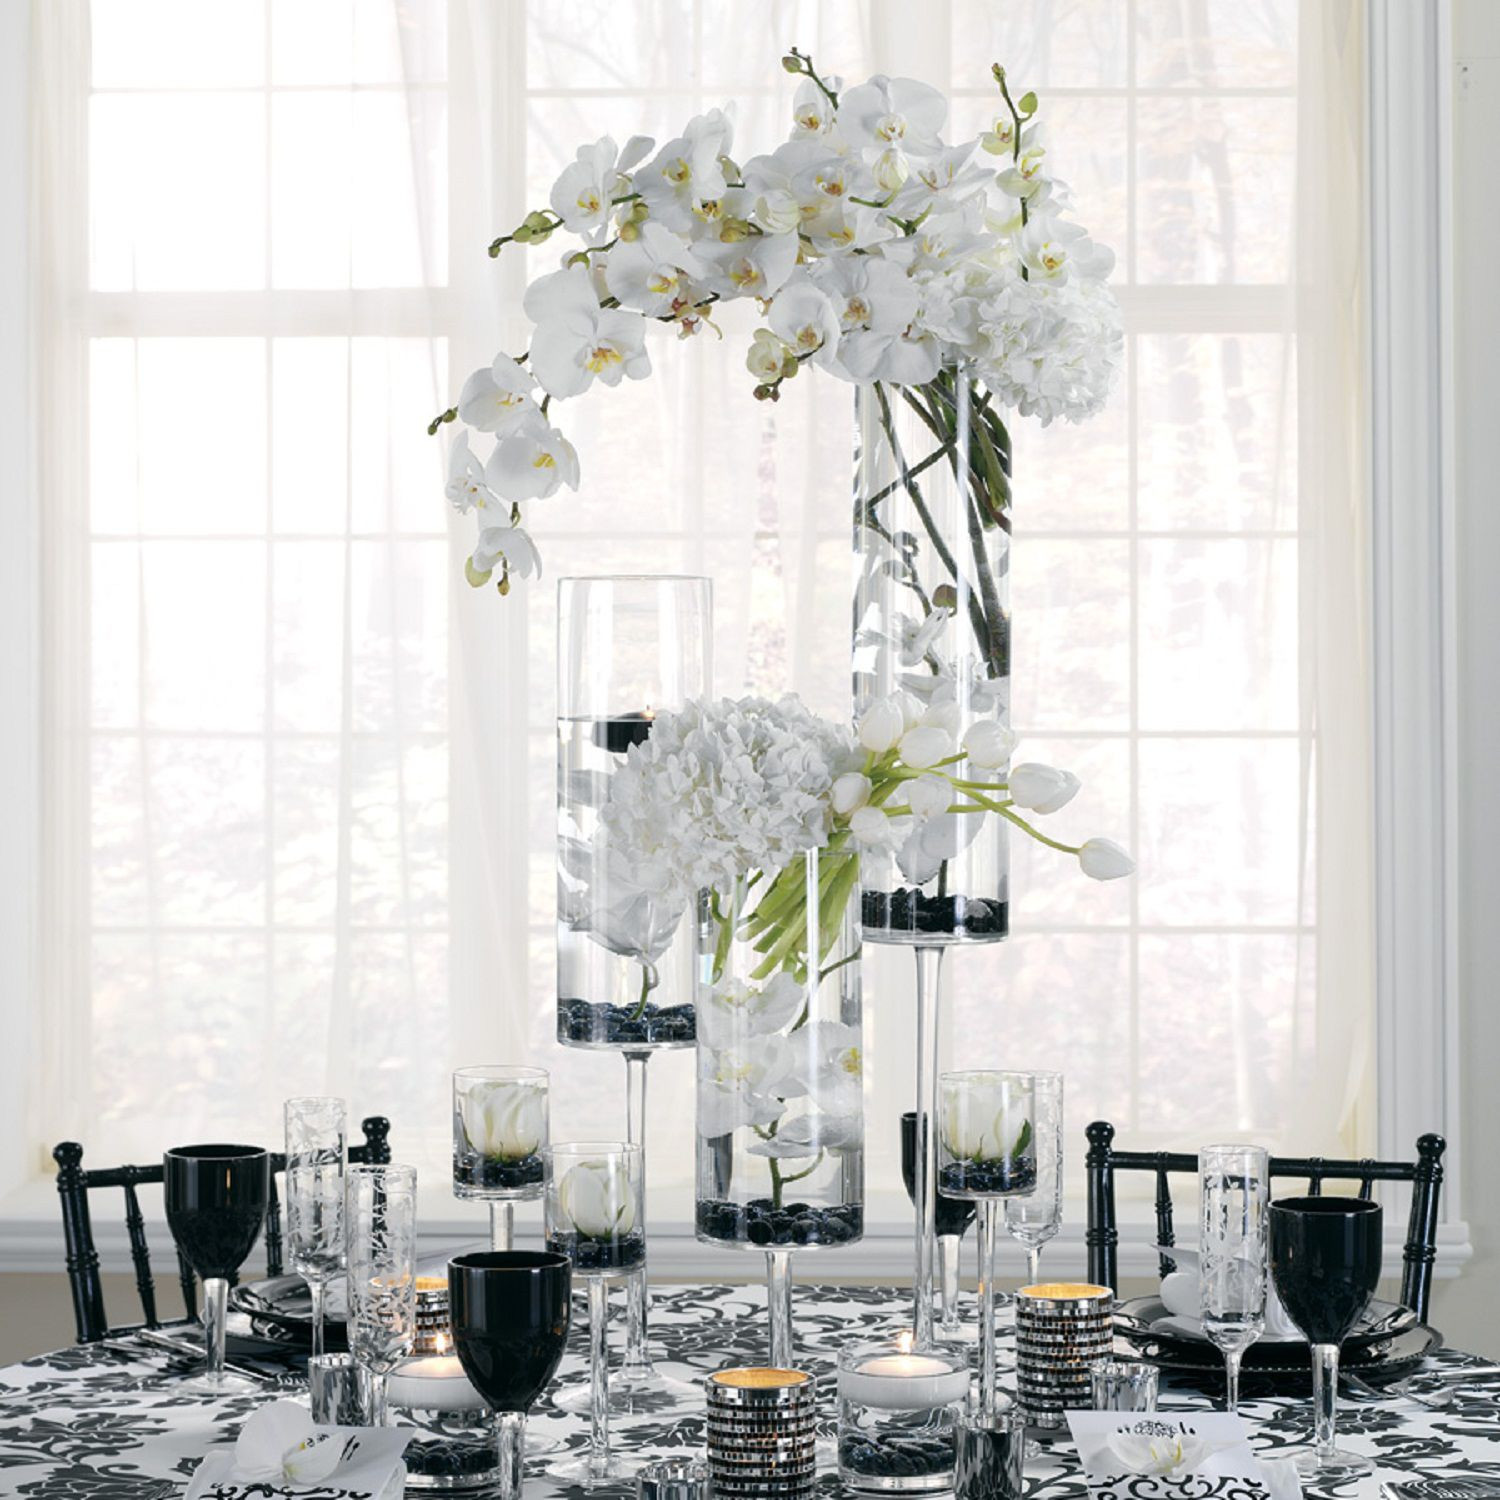 tall silver vases for wedding centerpieces of tall vase white flower arrangements flowers healthy throughout prepossessing long vase flower arrangement designs home accessories luxury ideas